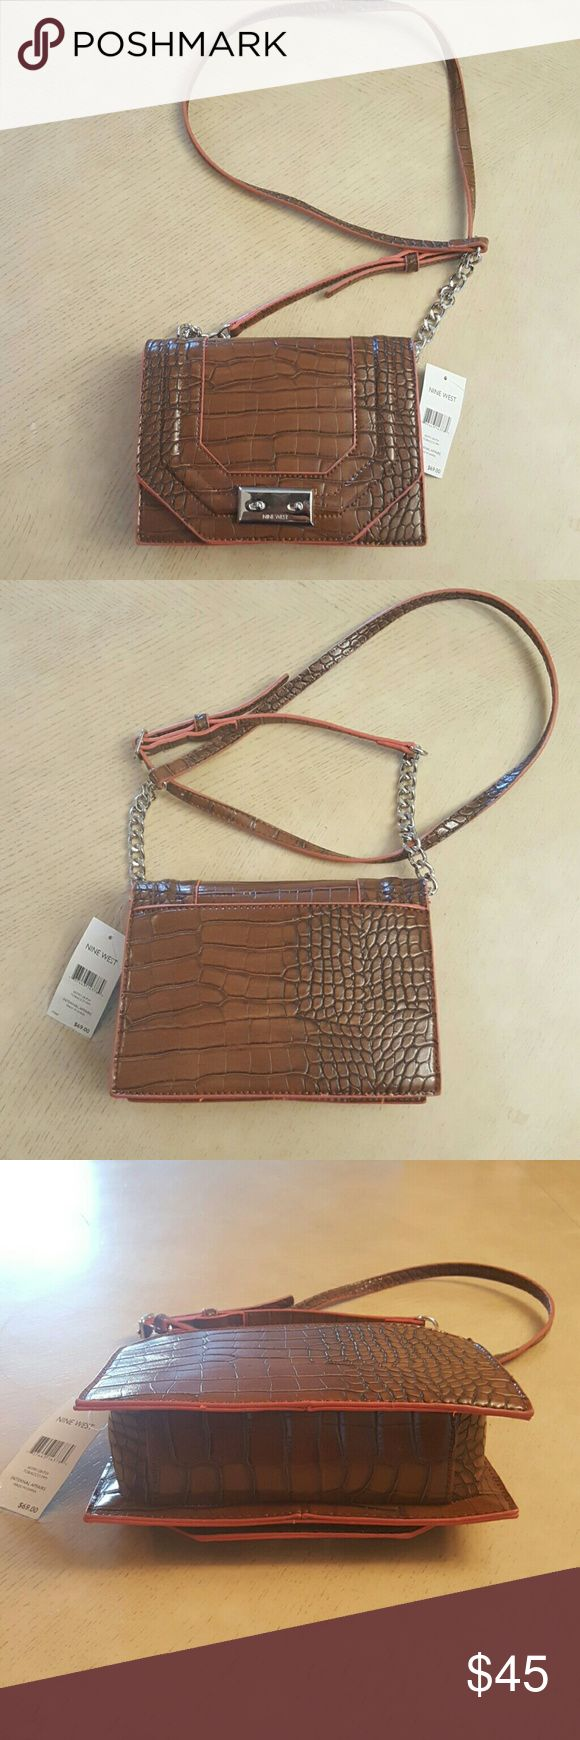 NWT Nine West Internal Affairs Crossbody NWT Nine West Internal Affairs tobacco crossbody. Never been used has original  $69 store tags. Nine West Bags Crossbody Bags